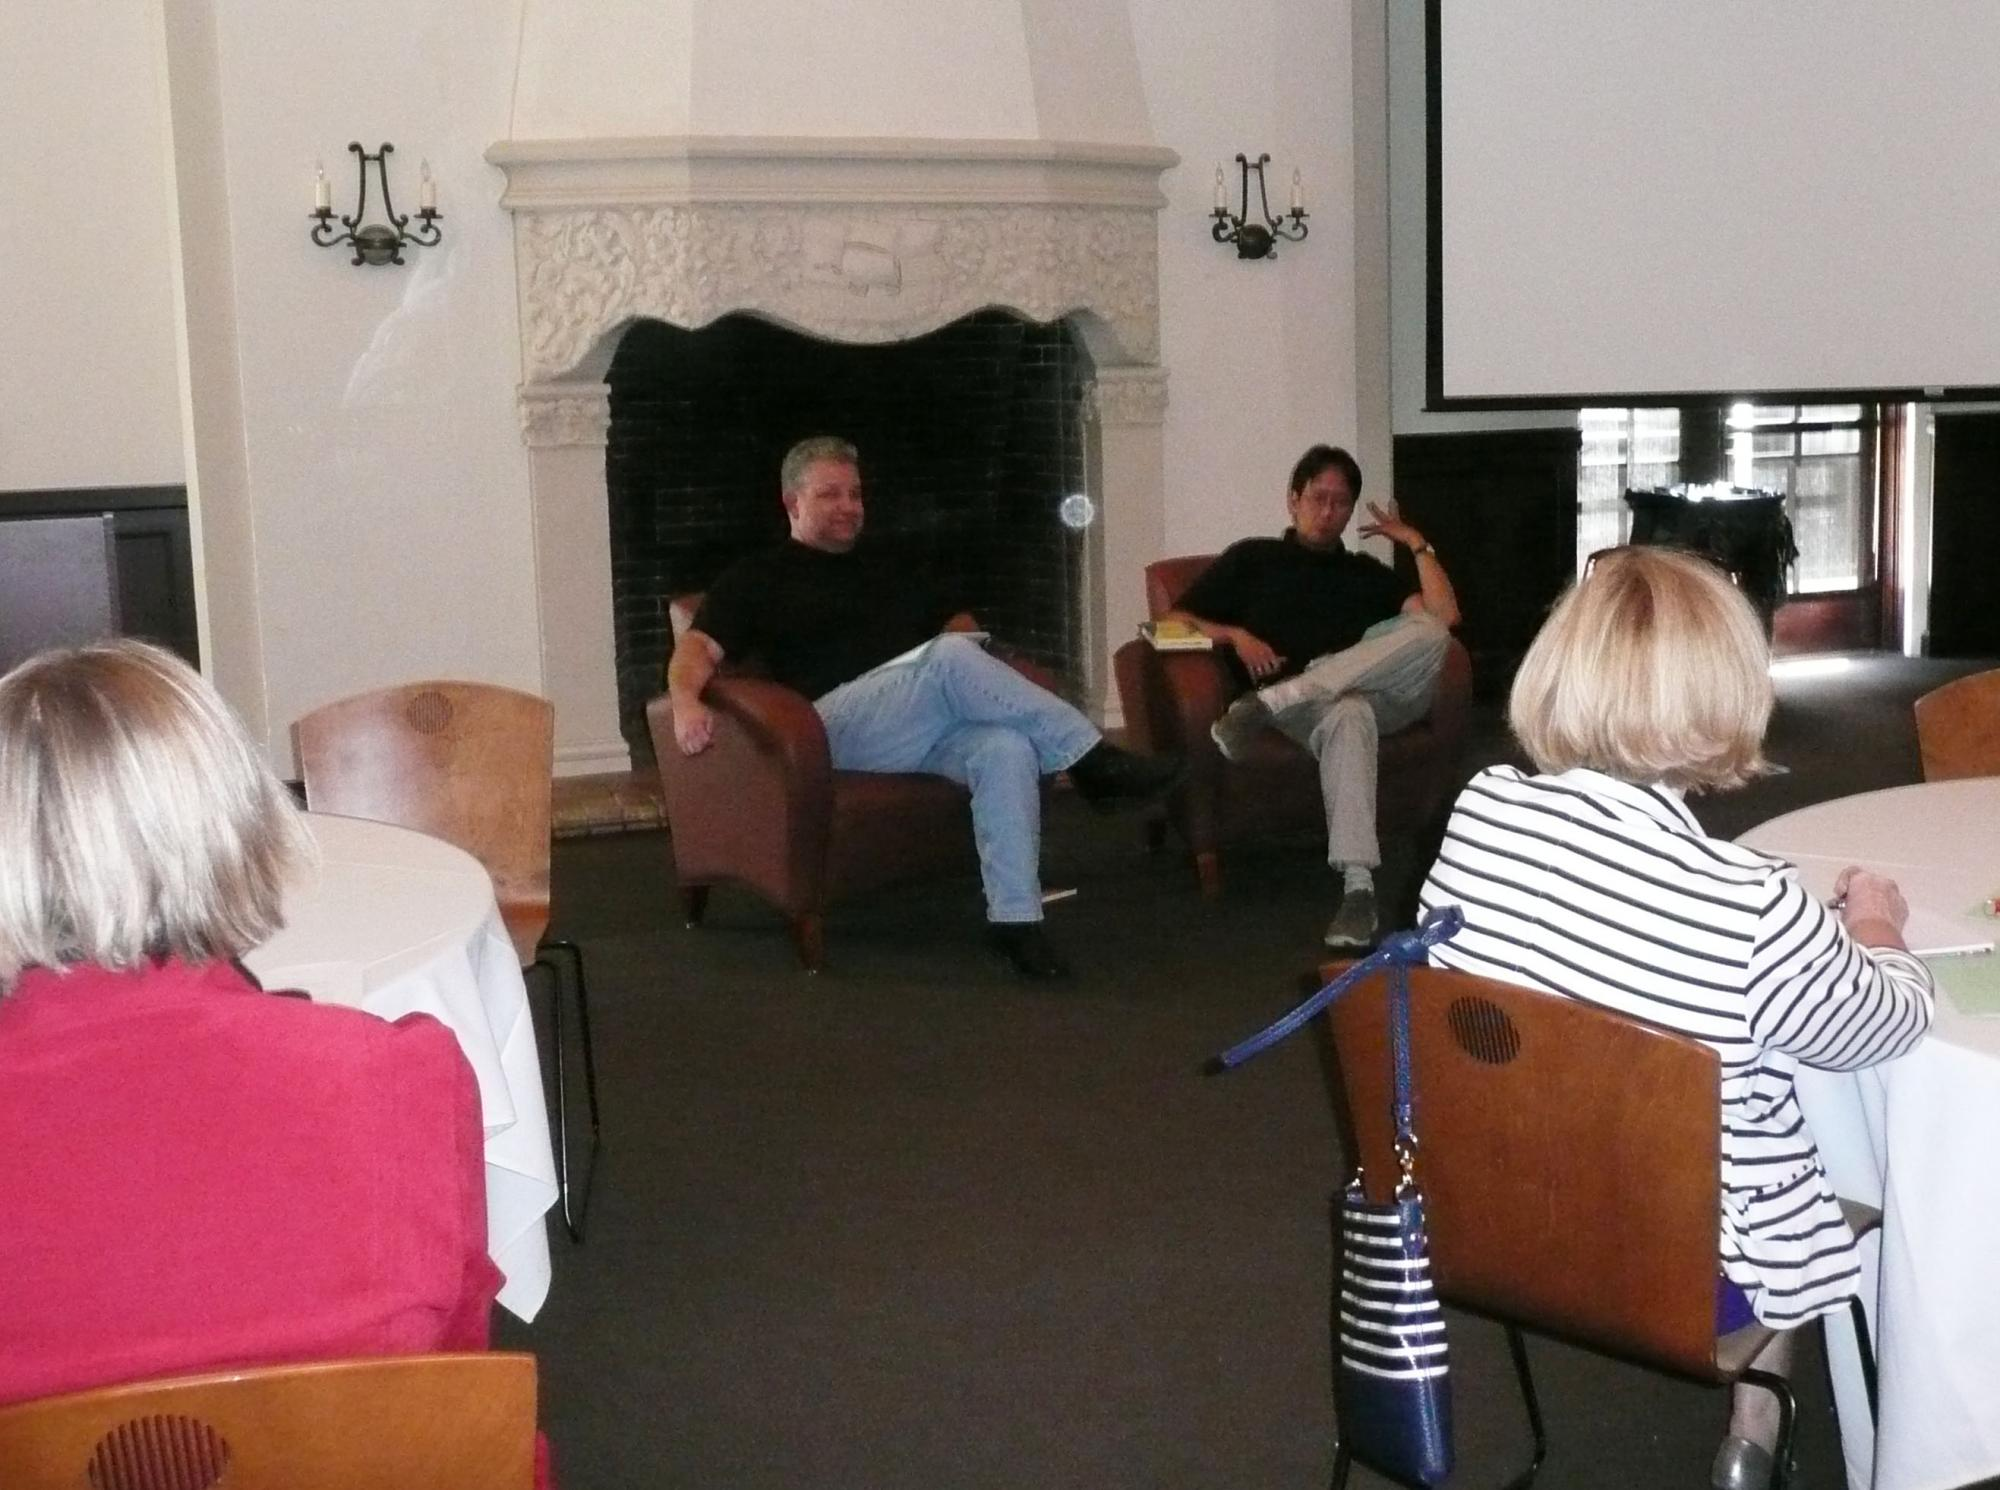 Library staff members and authors Mike Jung and Norm Partridge talked about how to follow your creative muse.